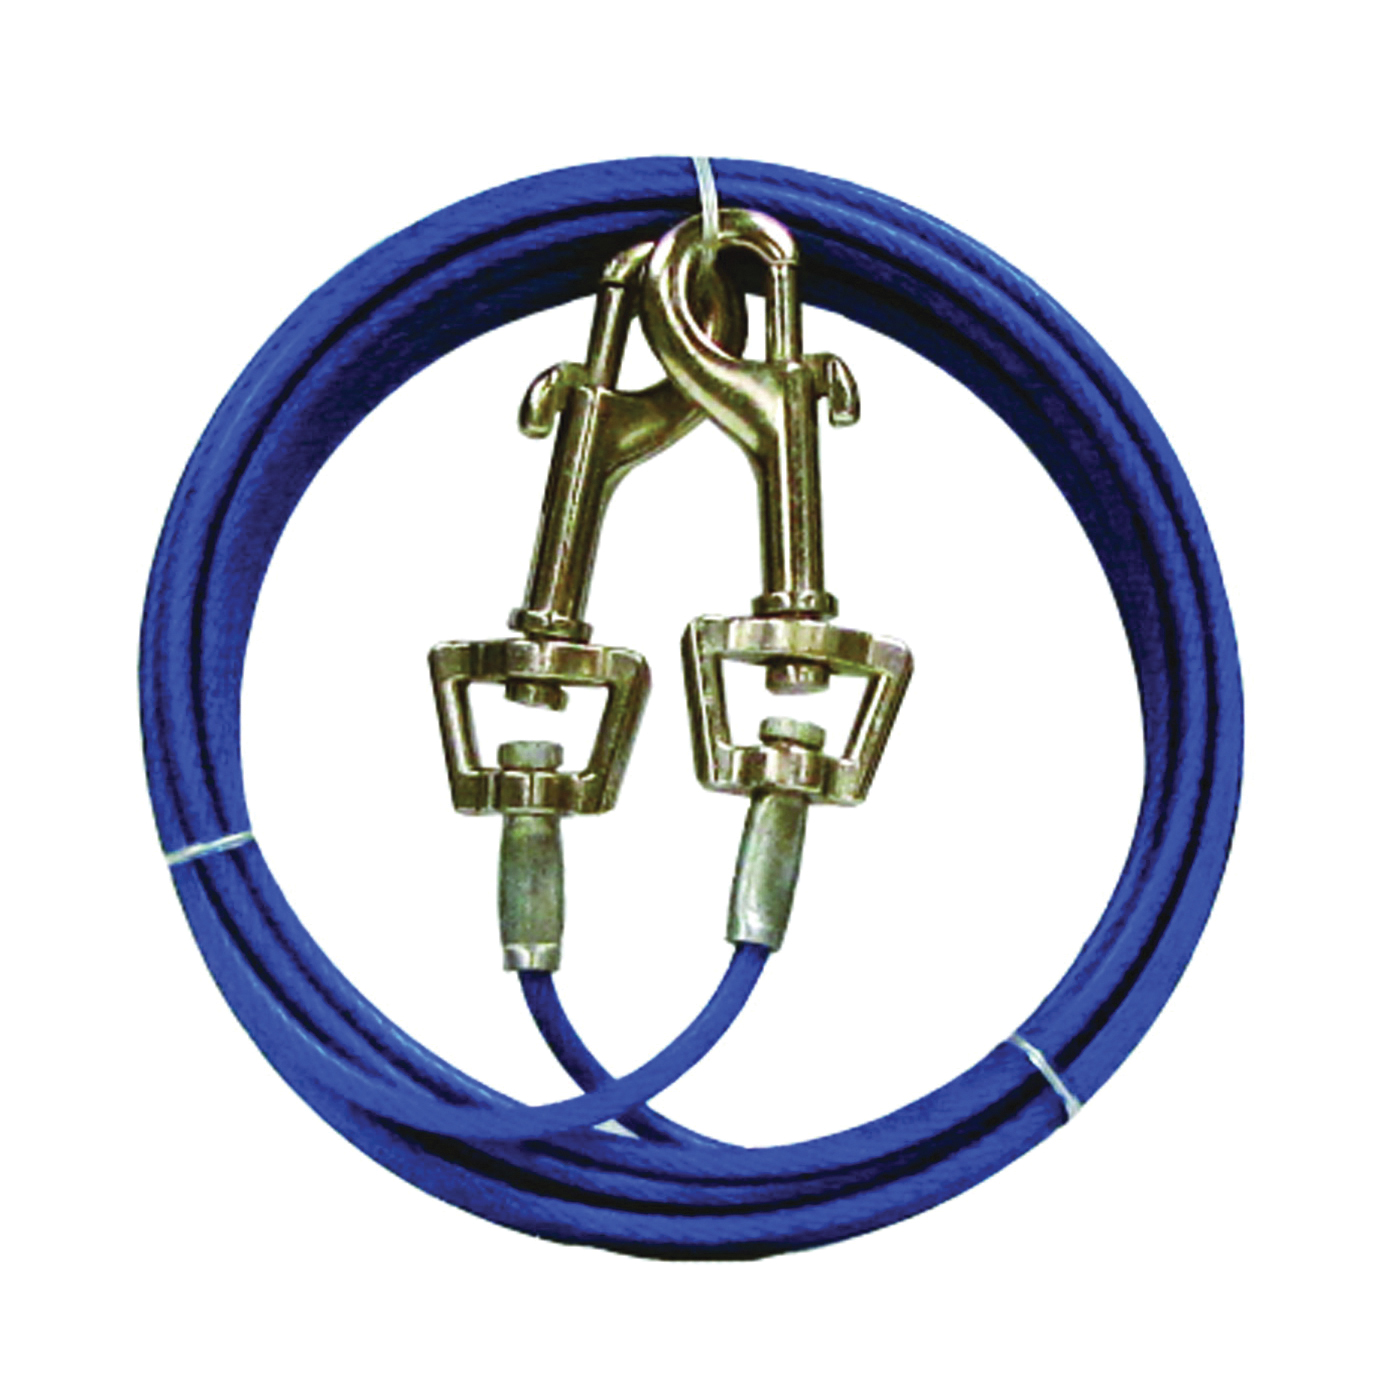 Picture of Boss Pet PDQ Q231500099 Pet Tie-Out Belt with Twin Swivel Snap, 15 ft L Belt/Cable, For: Medium Dogs Up to 35 lb